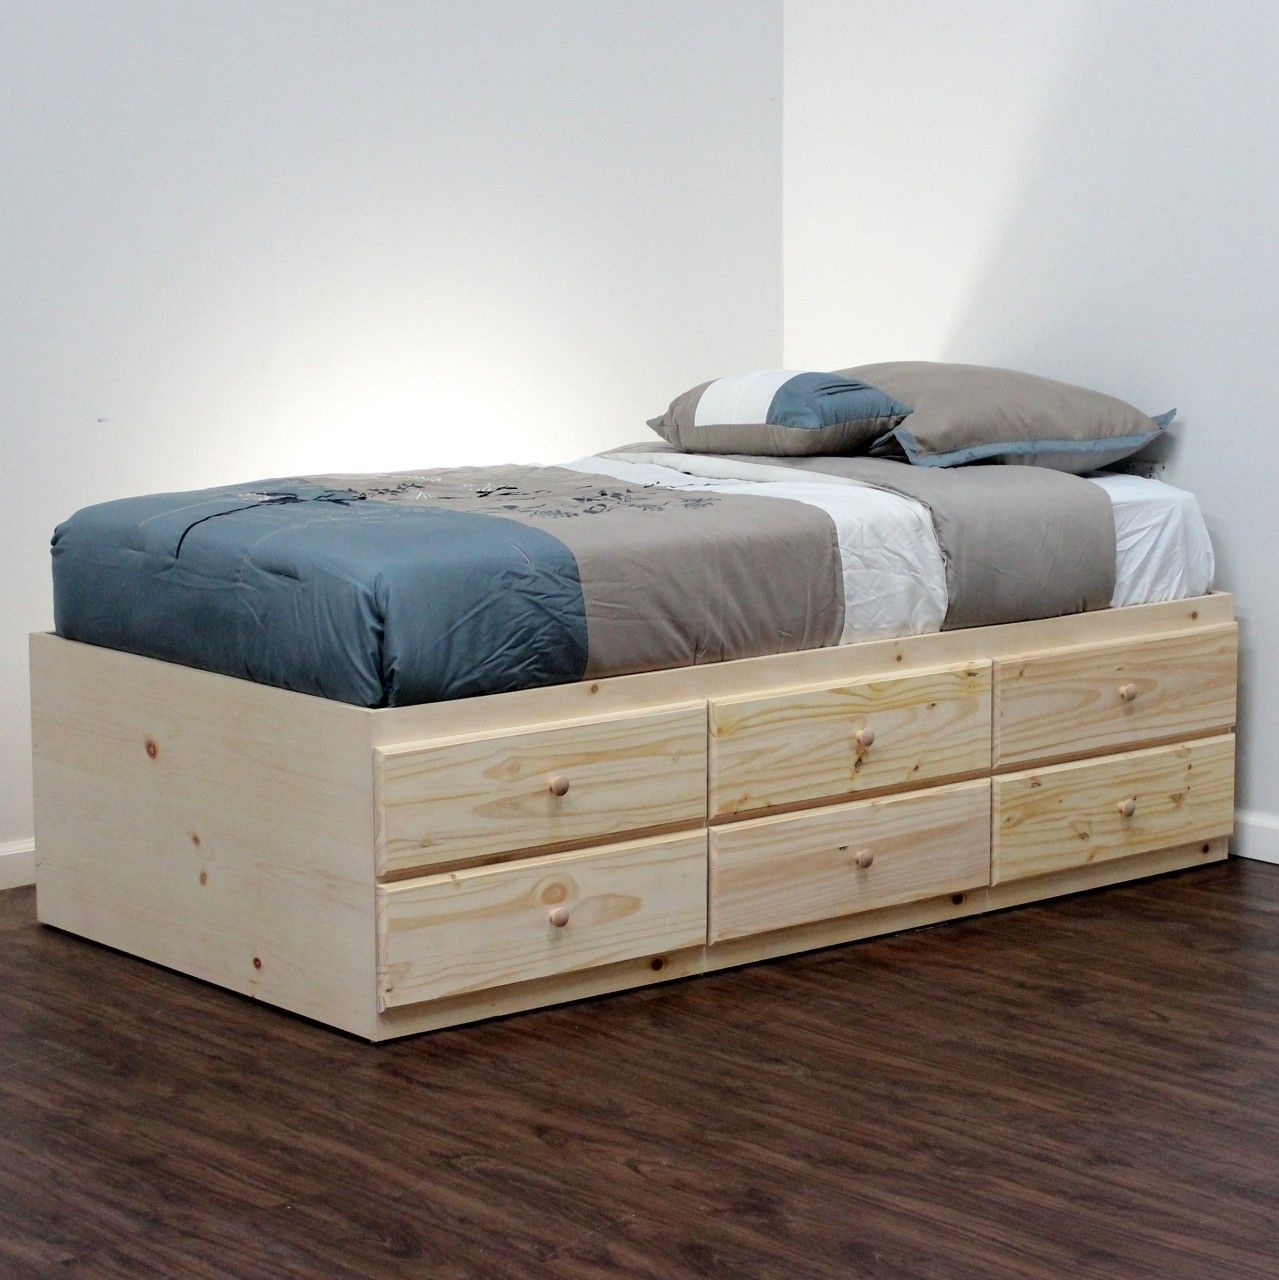 Bed frame designs with storage - Bed Frames